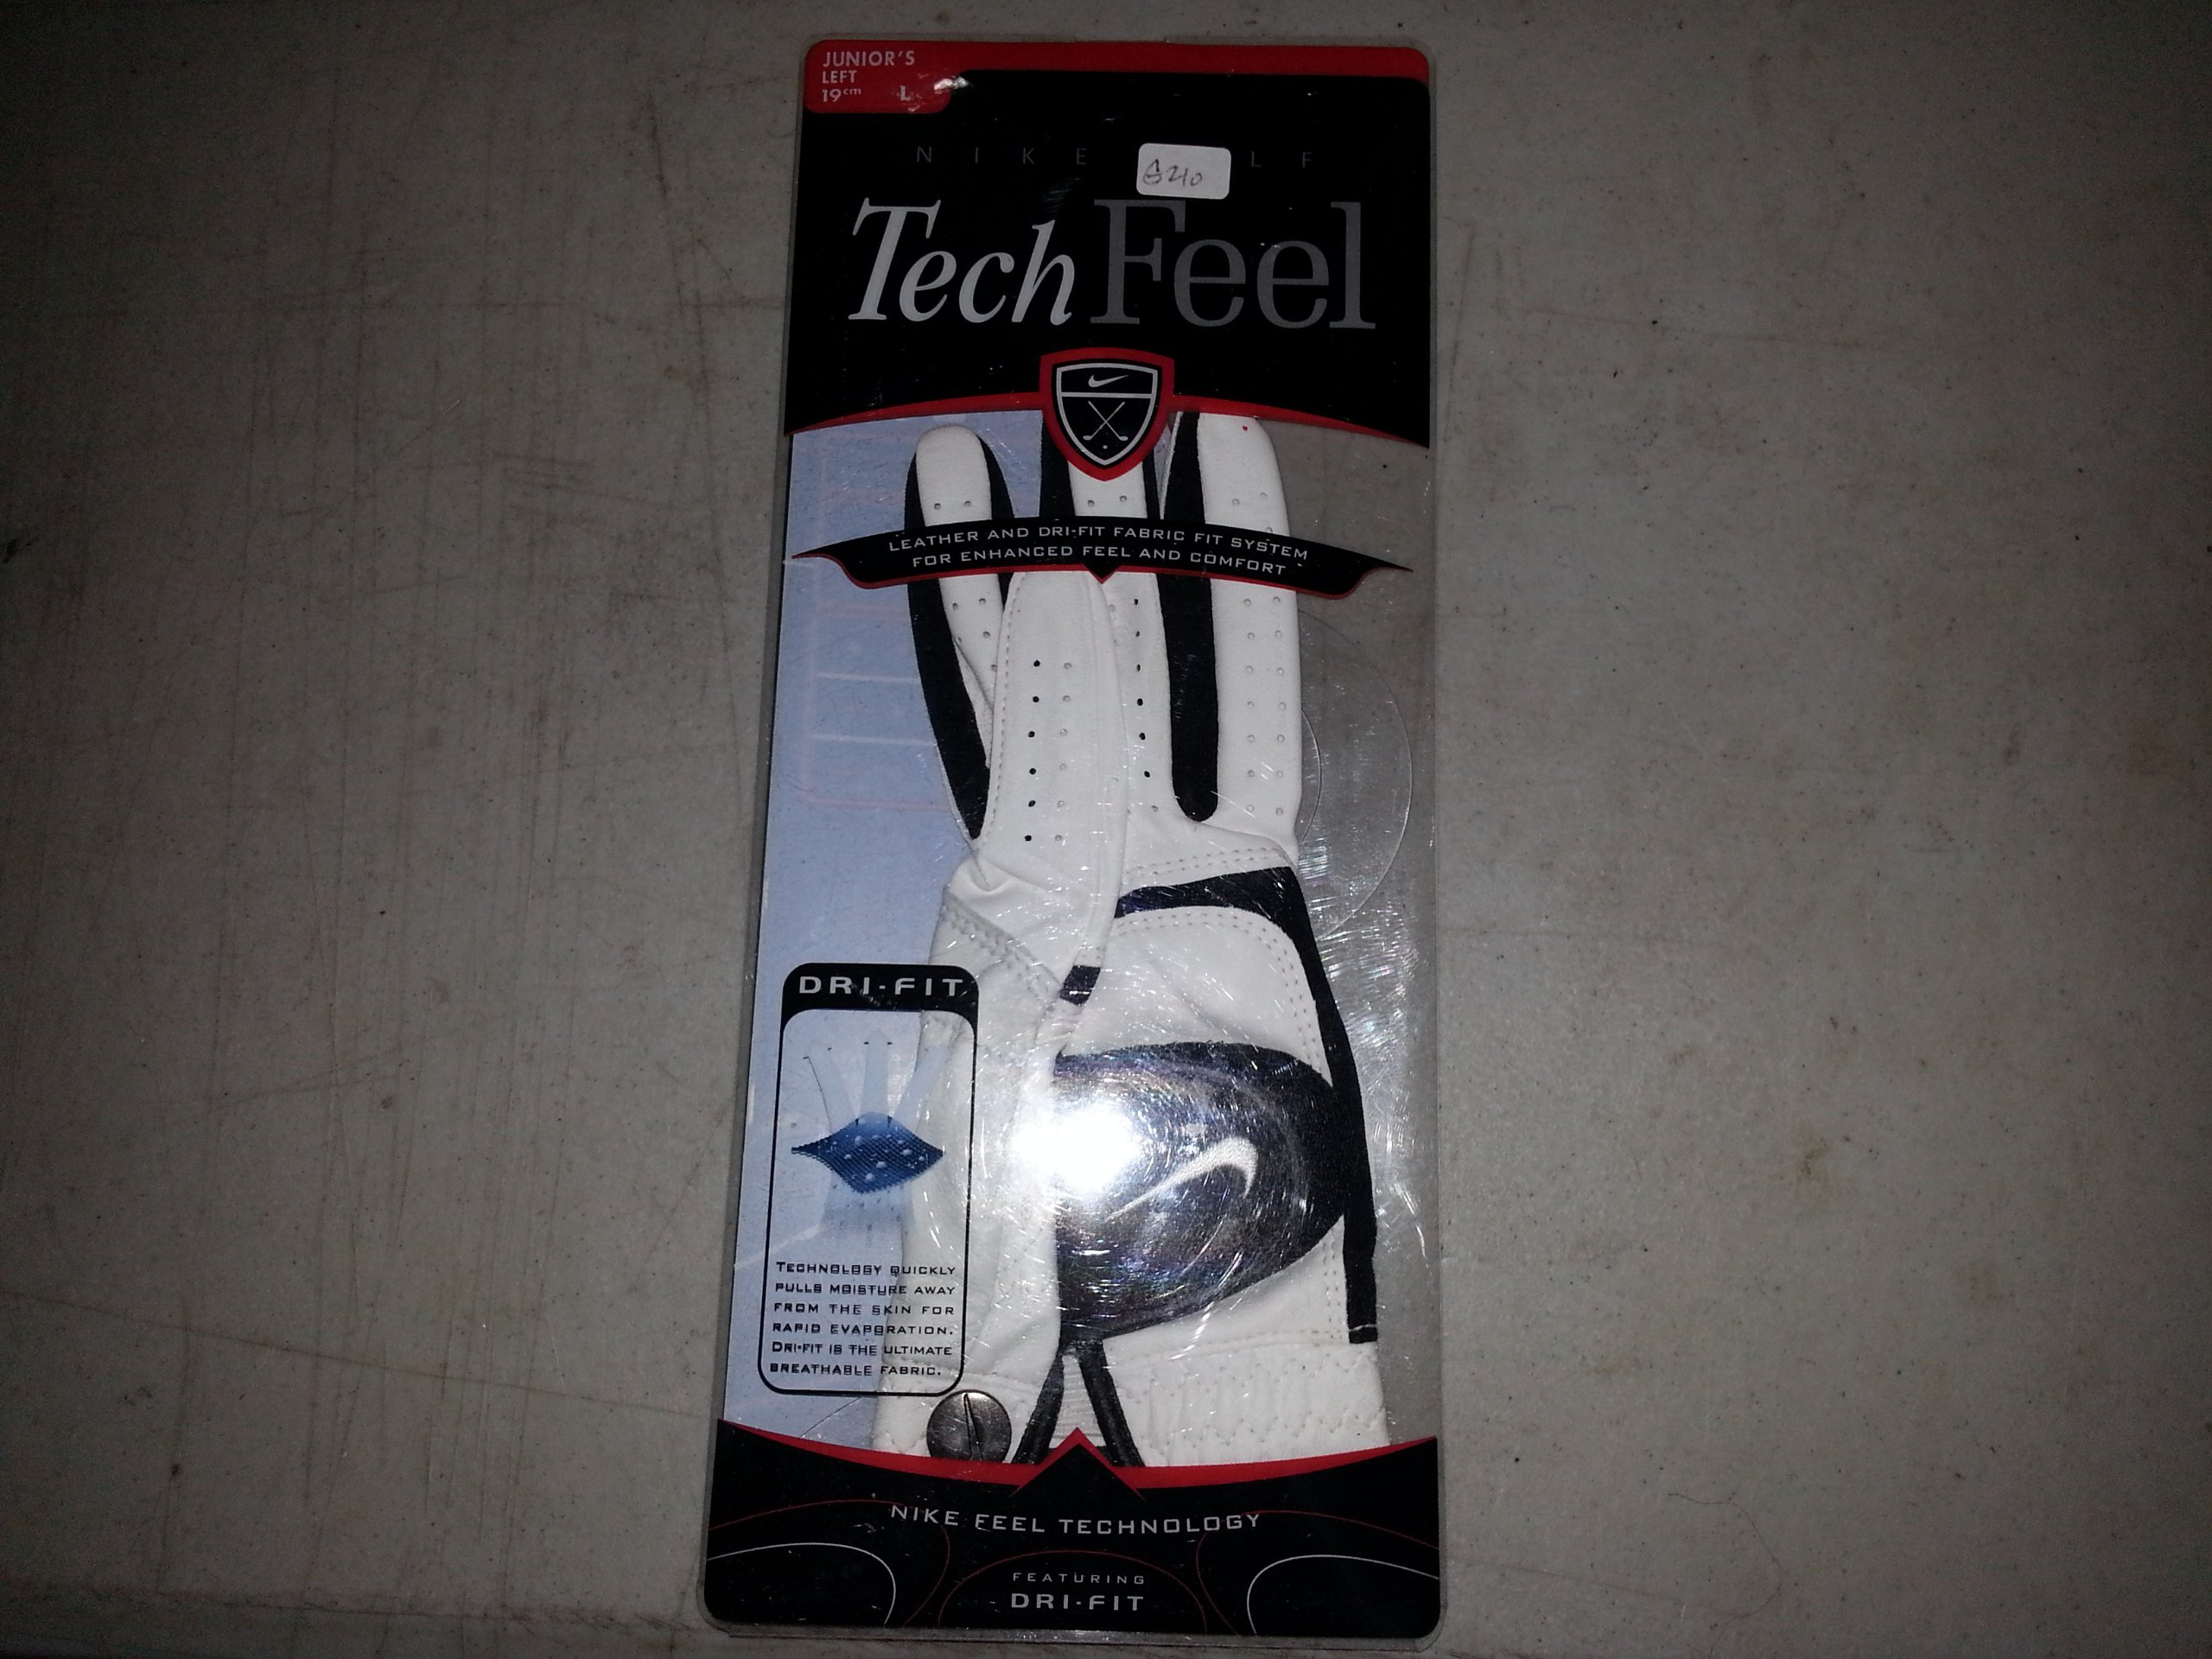 Tech Feel Golf Glove - Junior's Left Large by NIKE (Image #1)